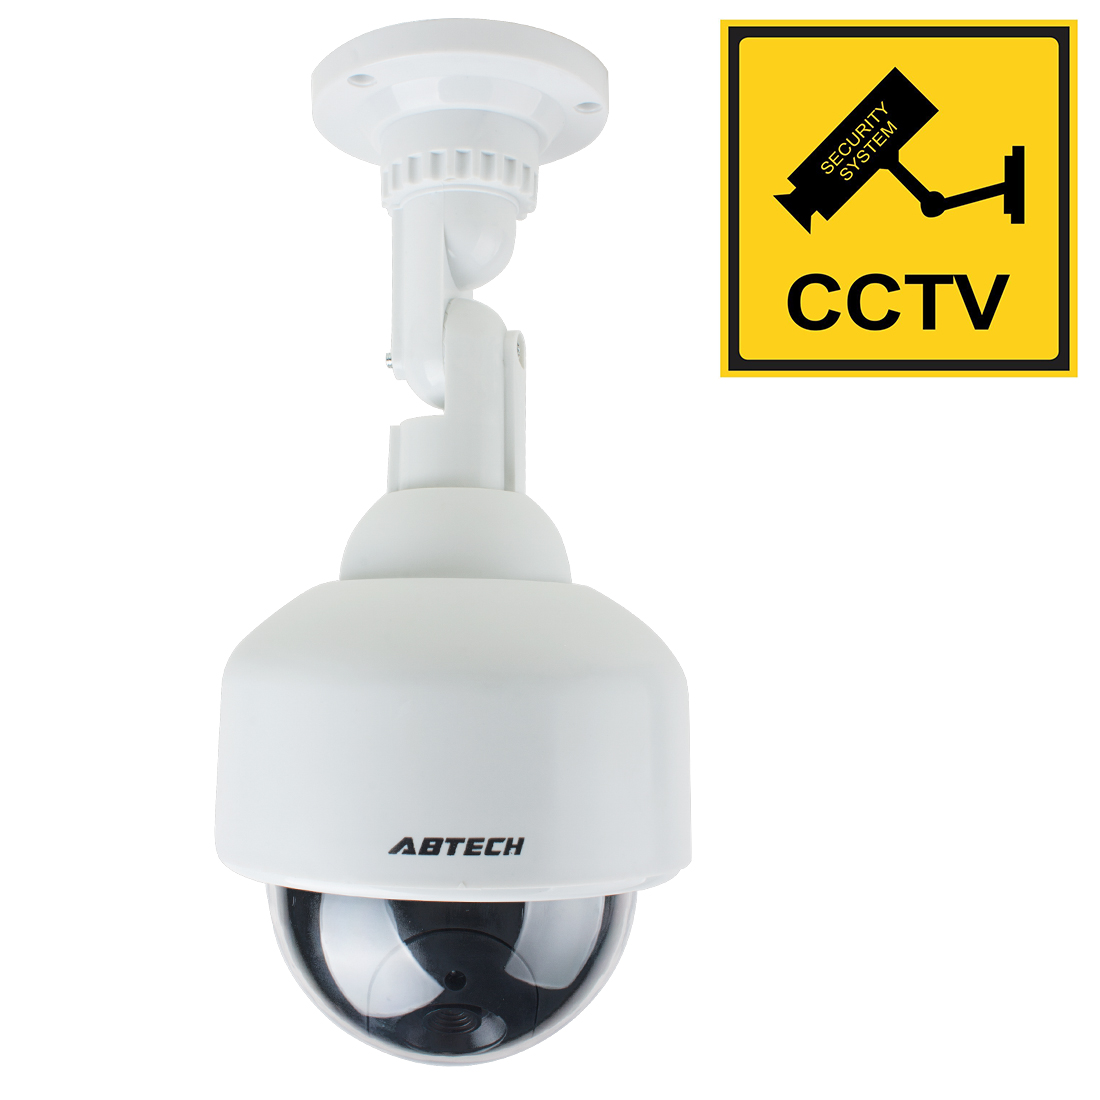 Fake Dummy Speed Dome Realistic Looking Security Camera Red LED Light Warning AA Battery Powered